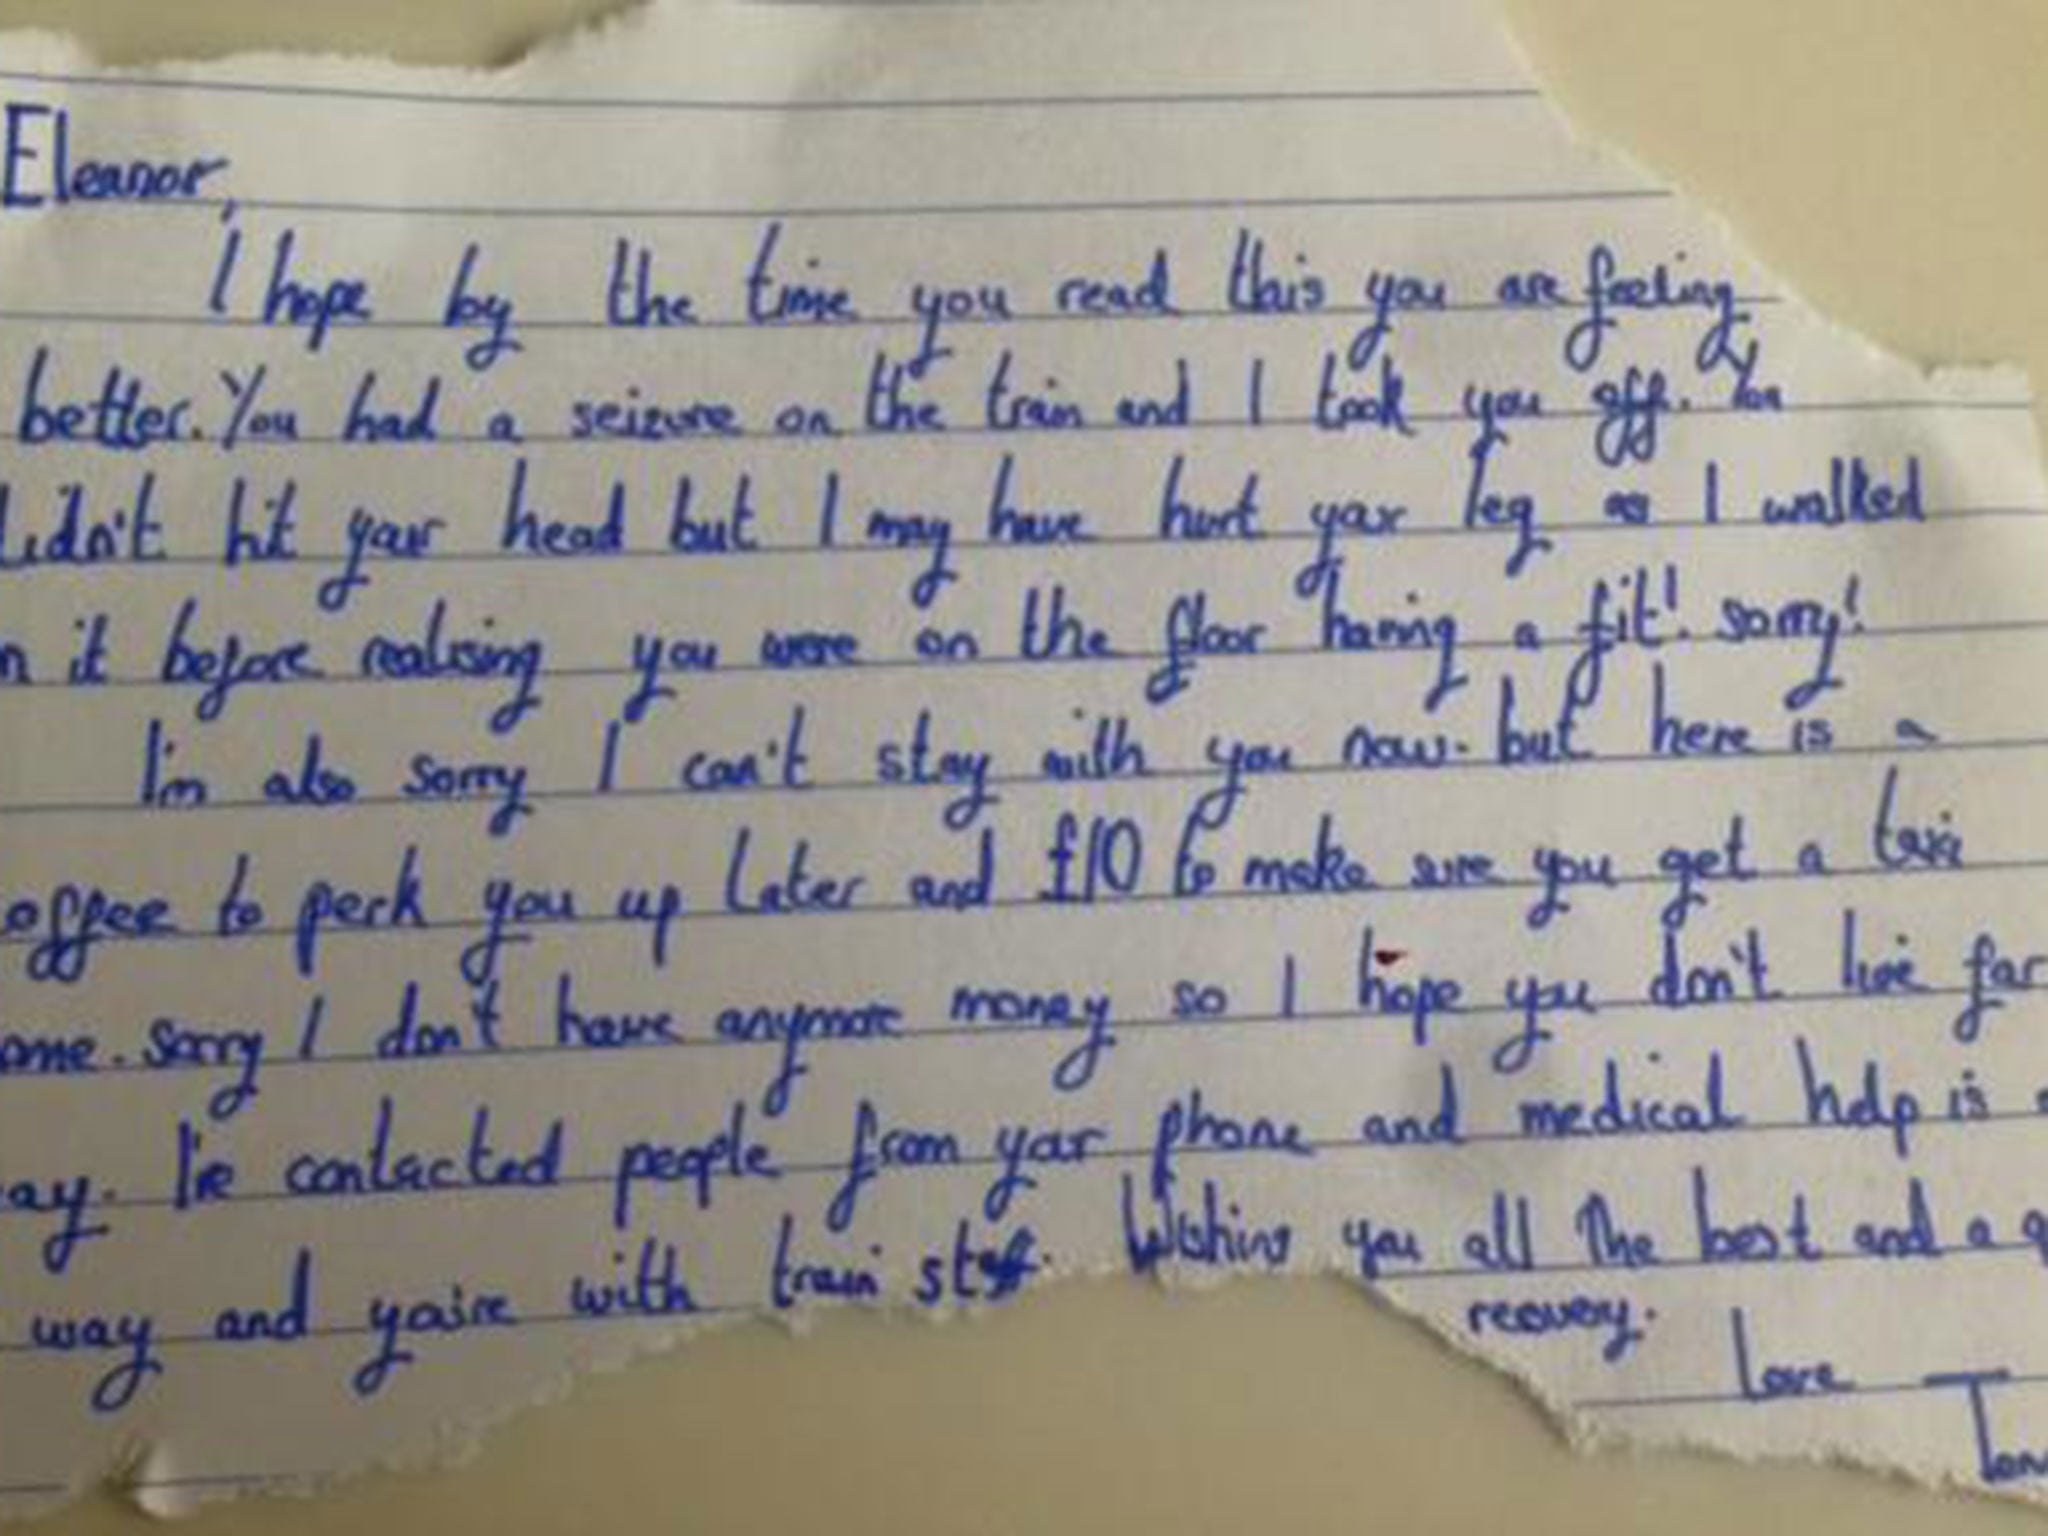 Woman trying to find stranger who left kind note after